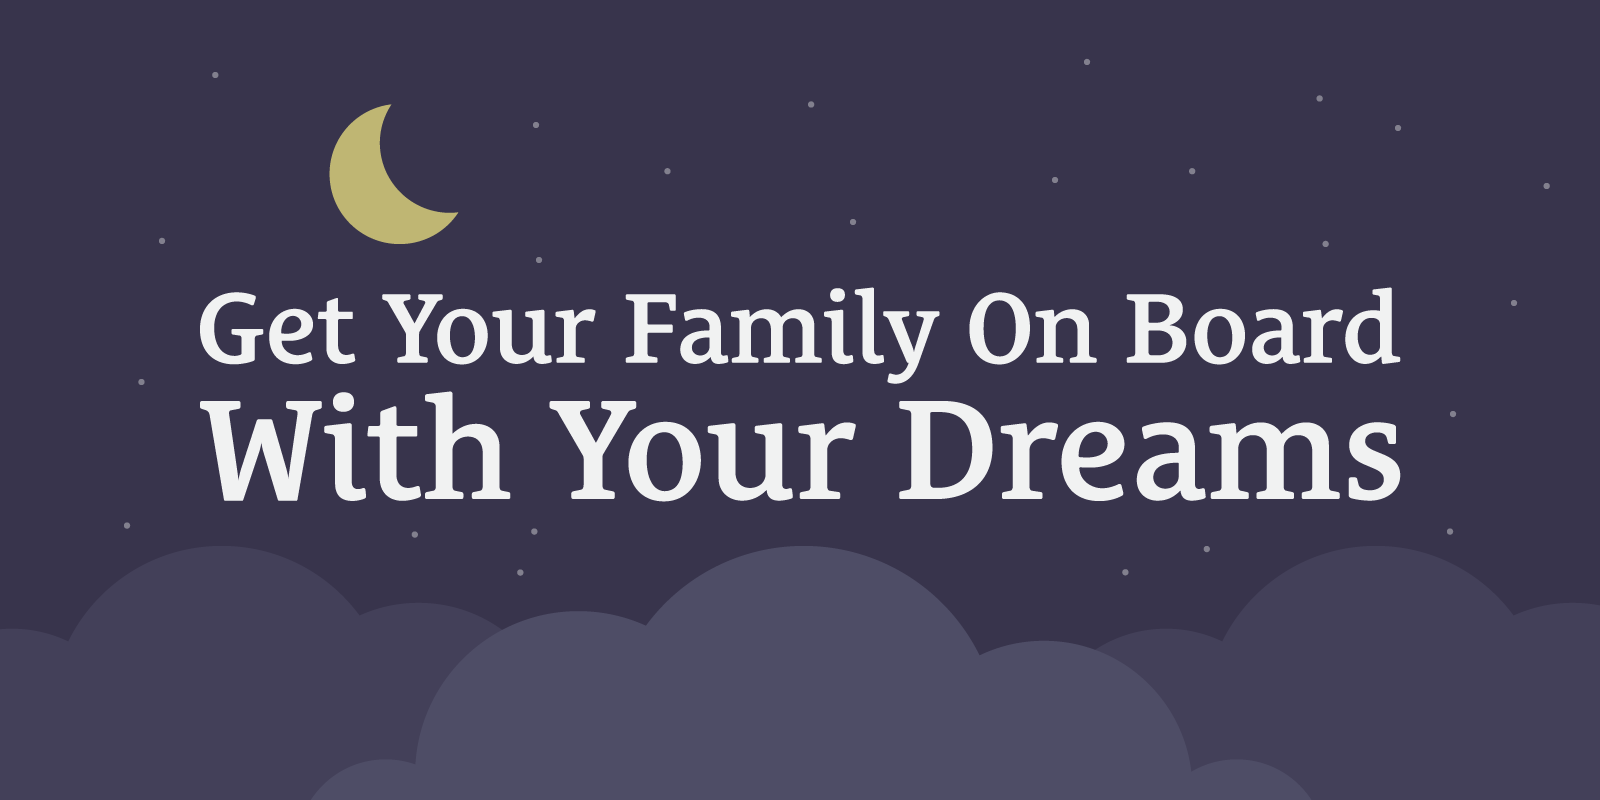 032: How to Get Your Family On Board With Your Dreams